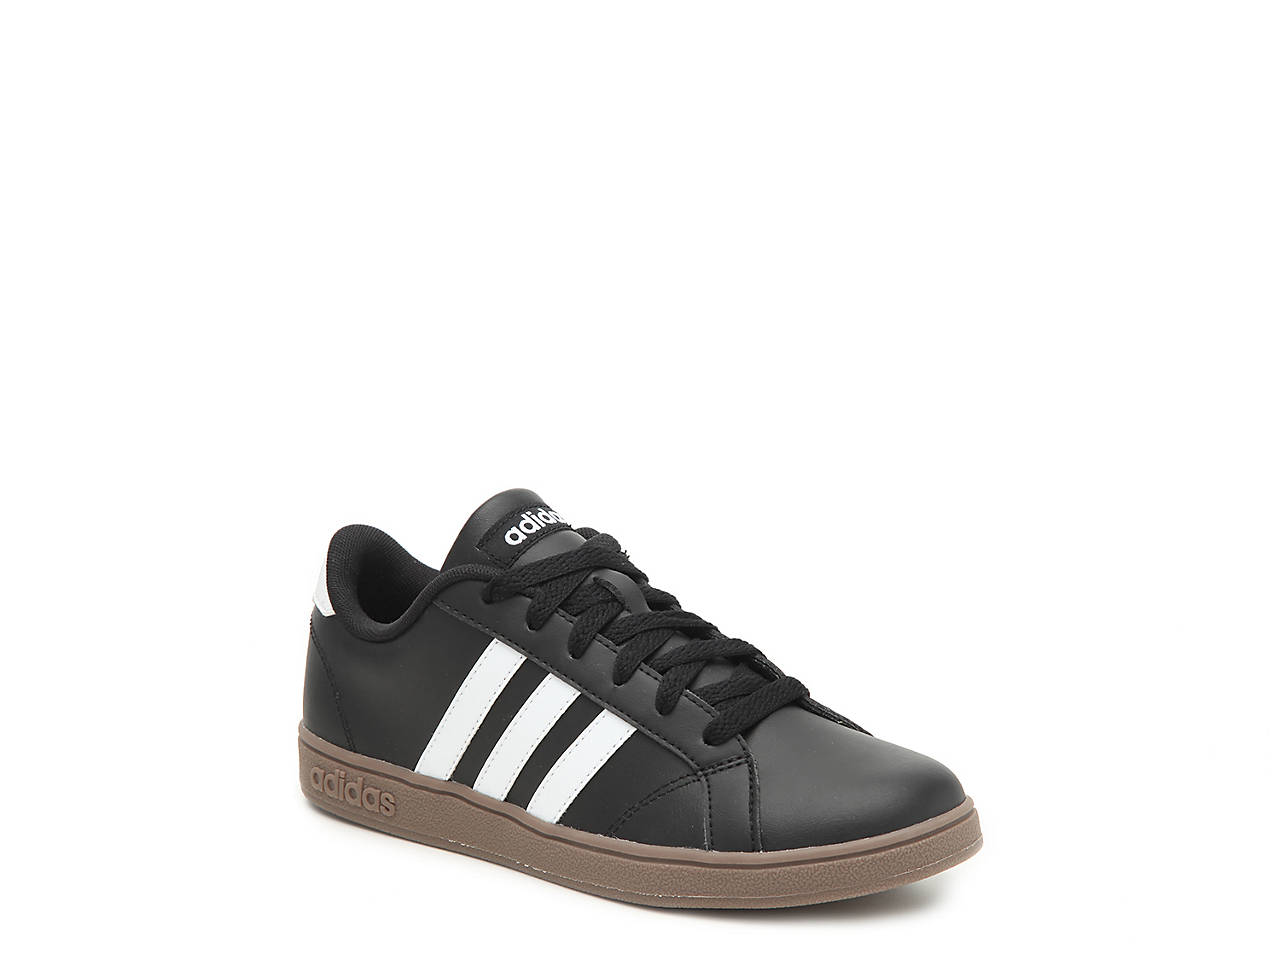 size 40 43cfe 617be adidas. Baseline Toddler  Youth Sneaker